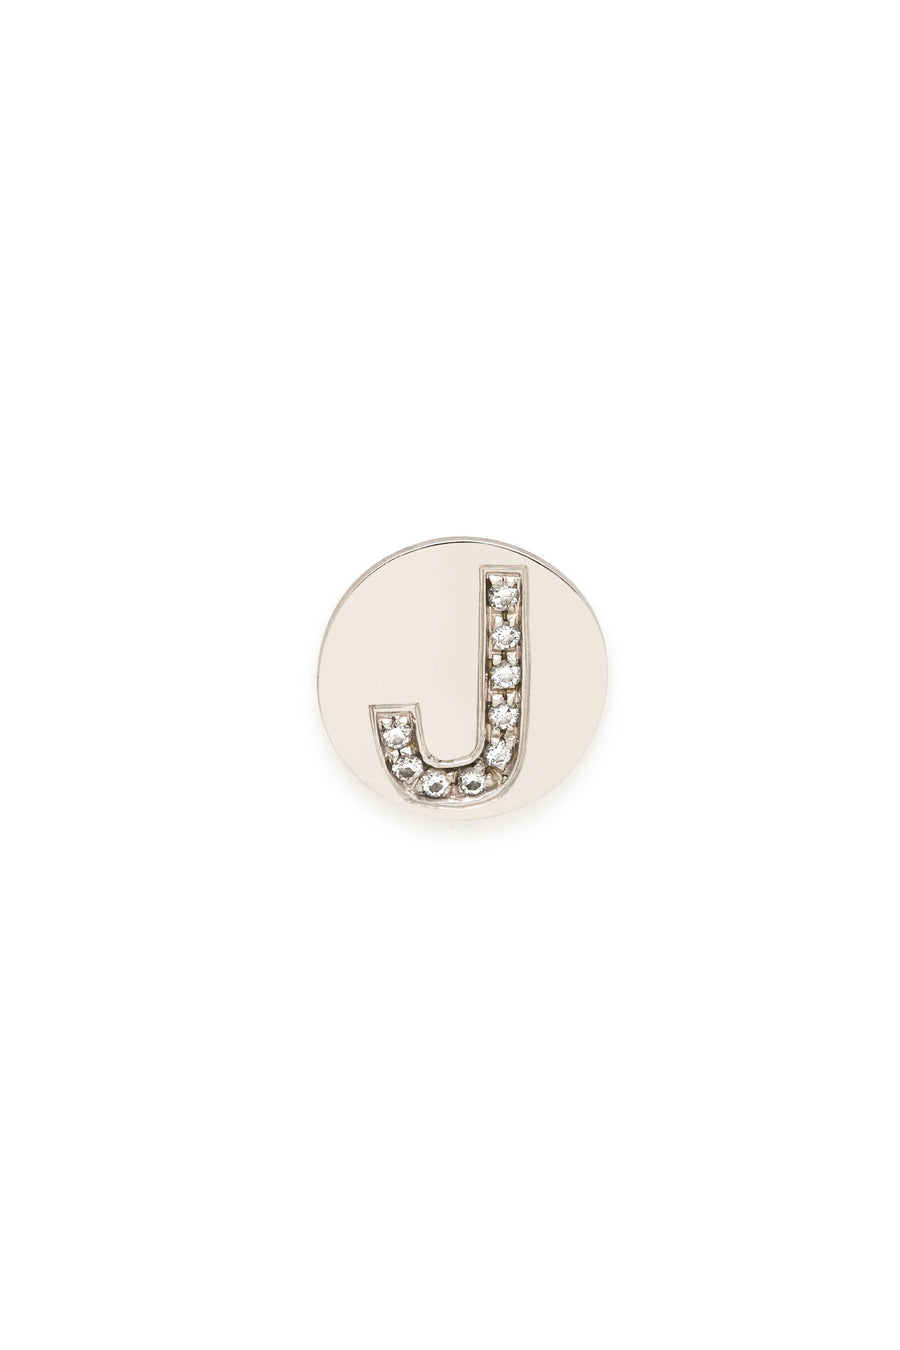 Sterling Silver & Diamond Initial Magnetic Charm - J